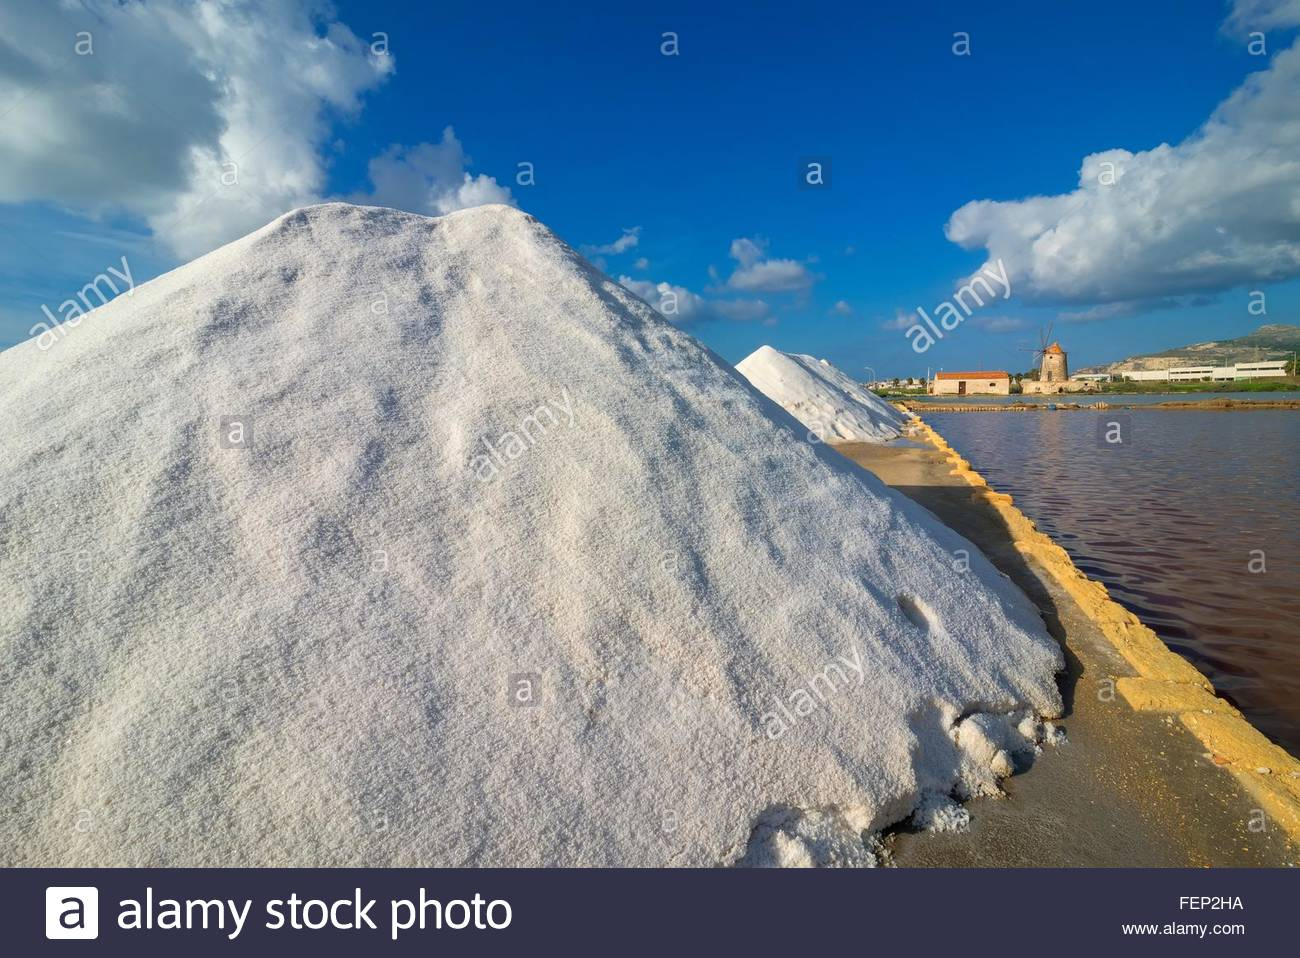 Salt stacks on salt pan waterfront, Trapani, Sicily, Italy Stock Photo